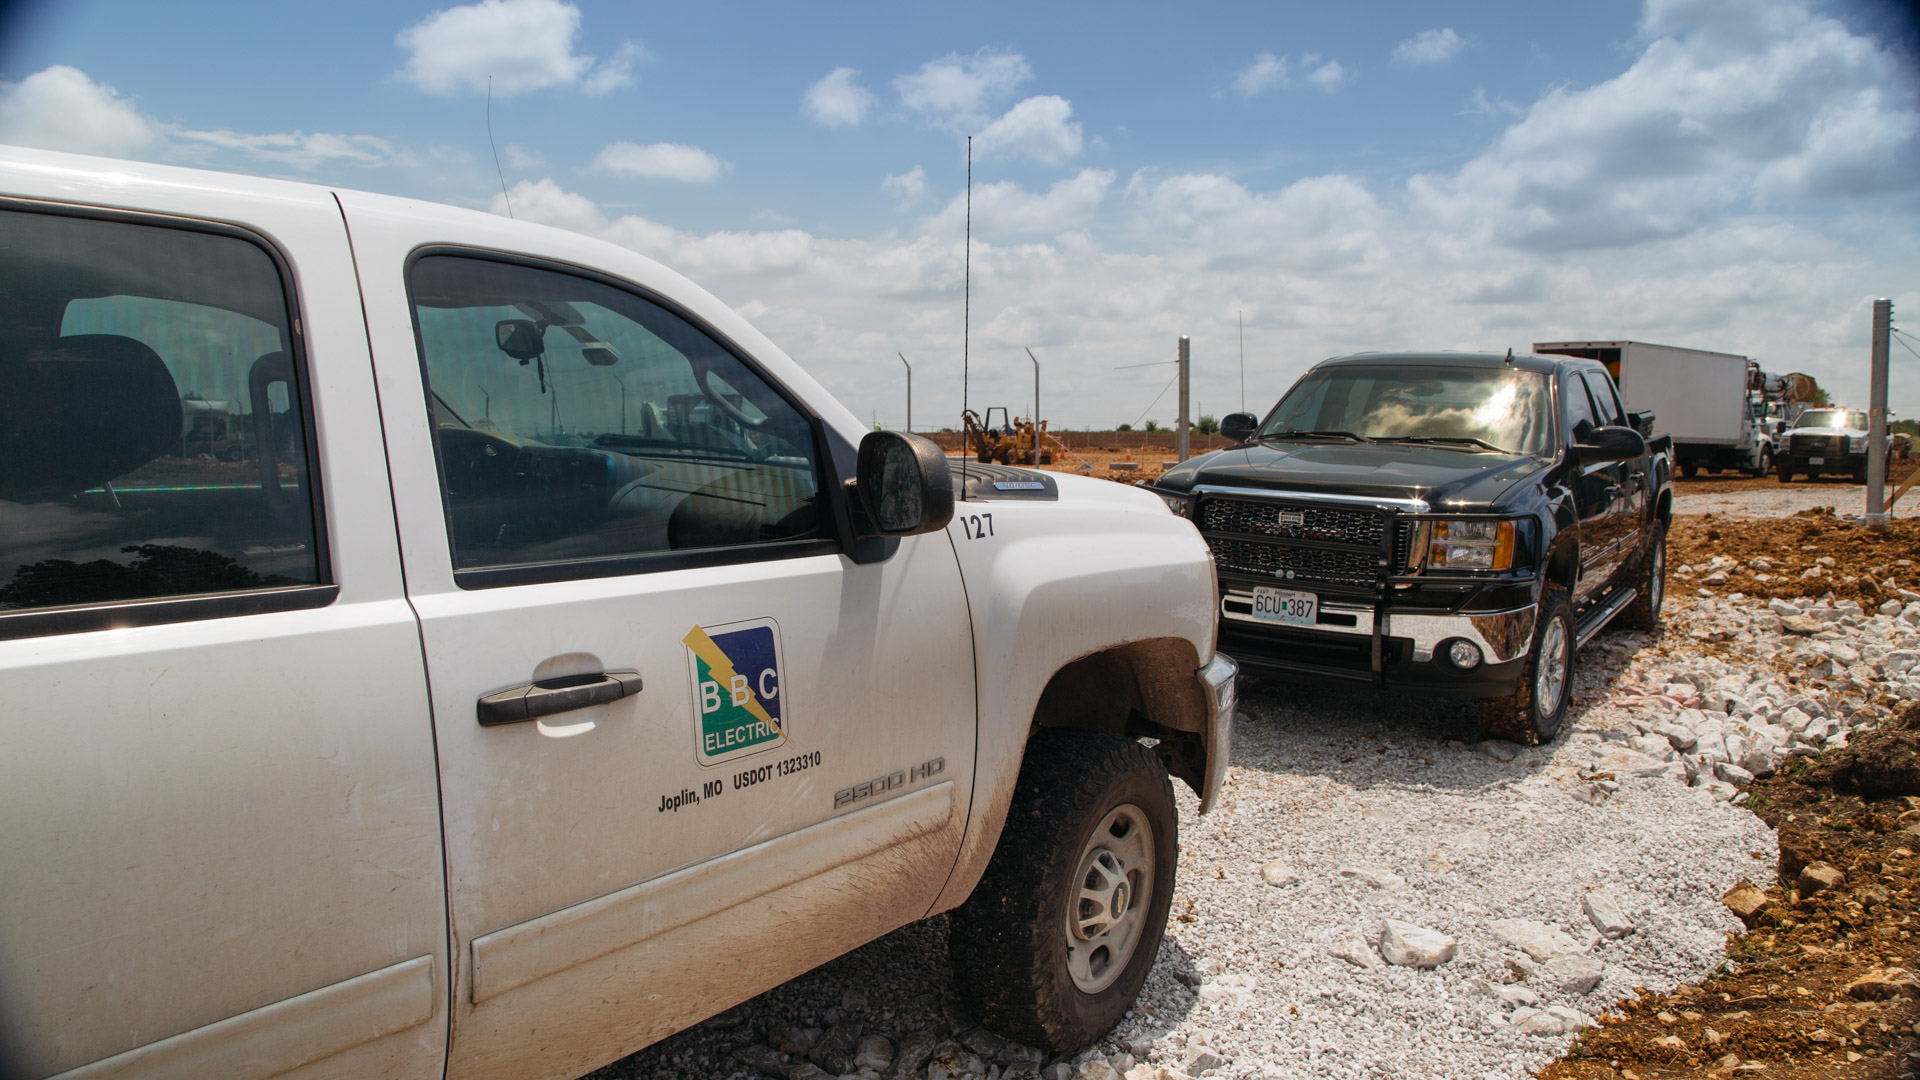 Image of multiple trucks at the Empire Substation construction site in Joplin, MO.